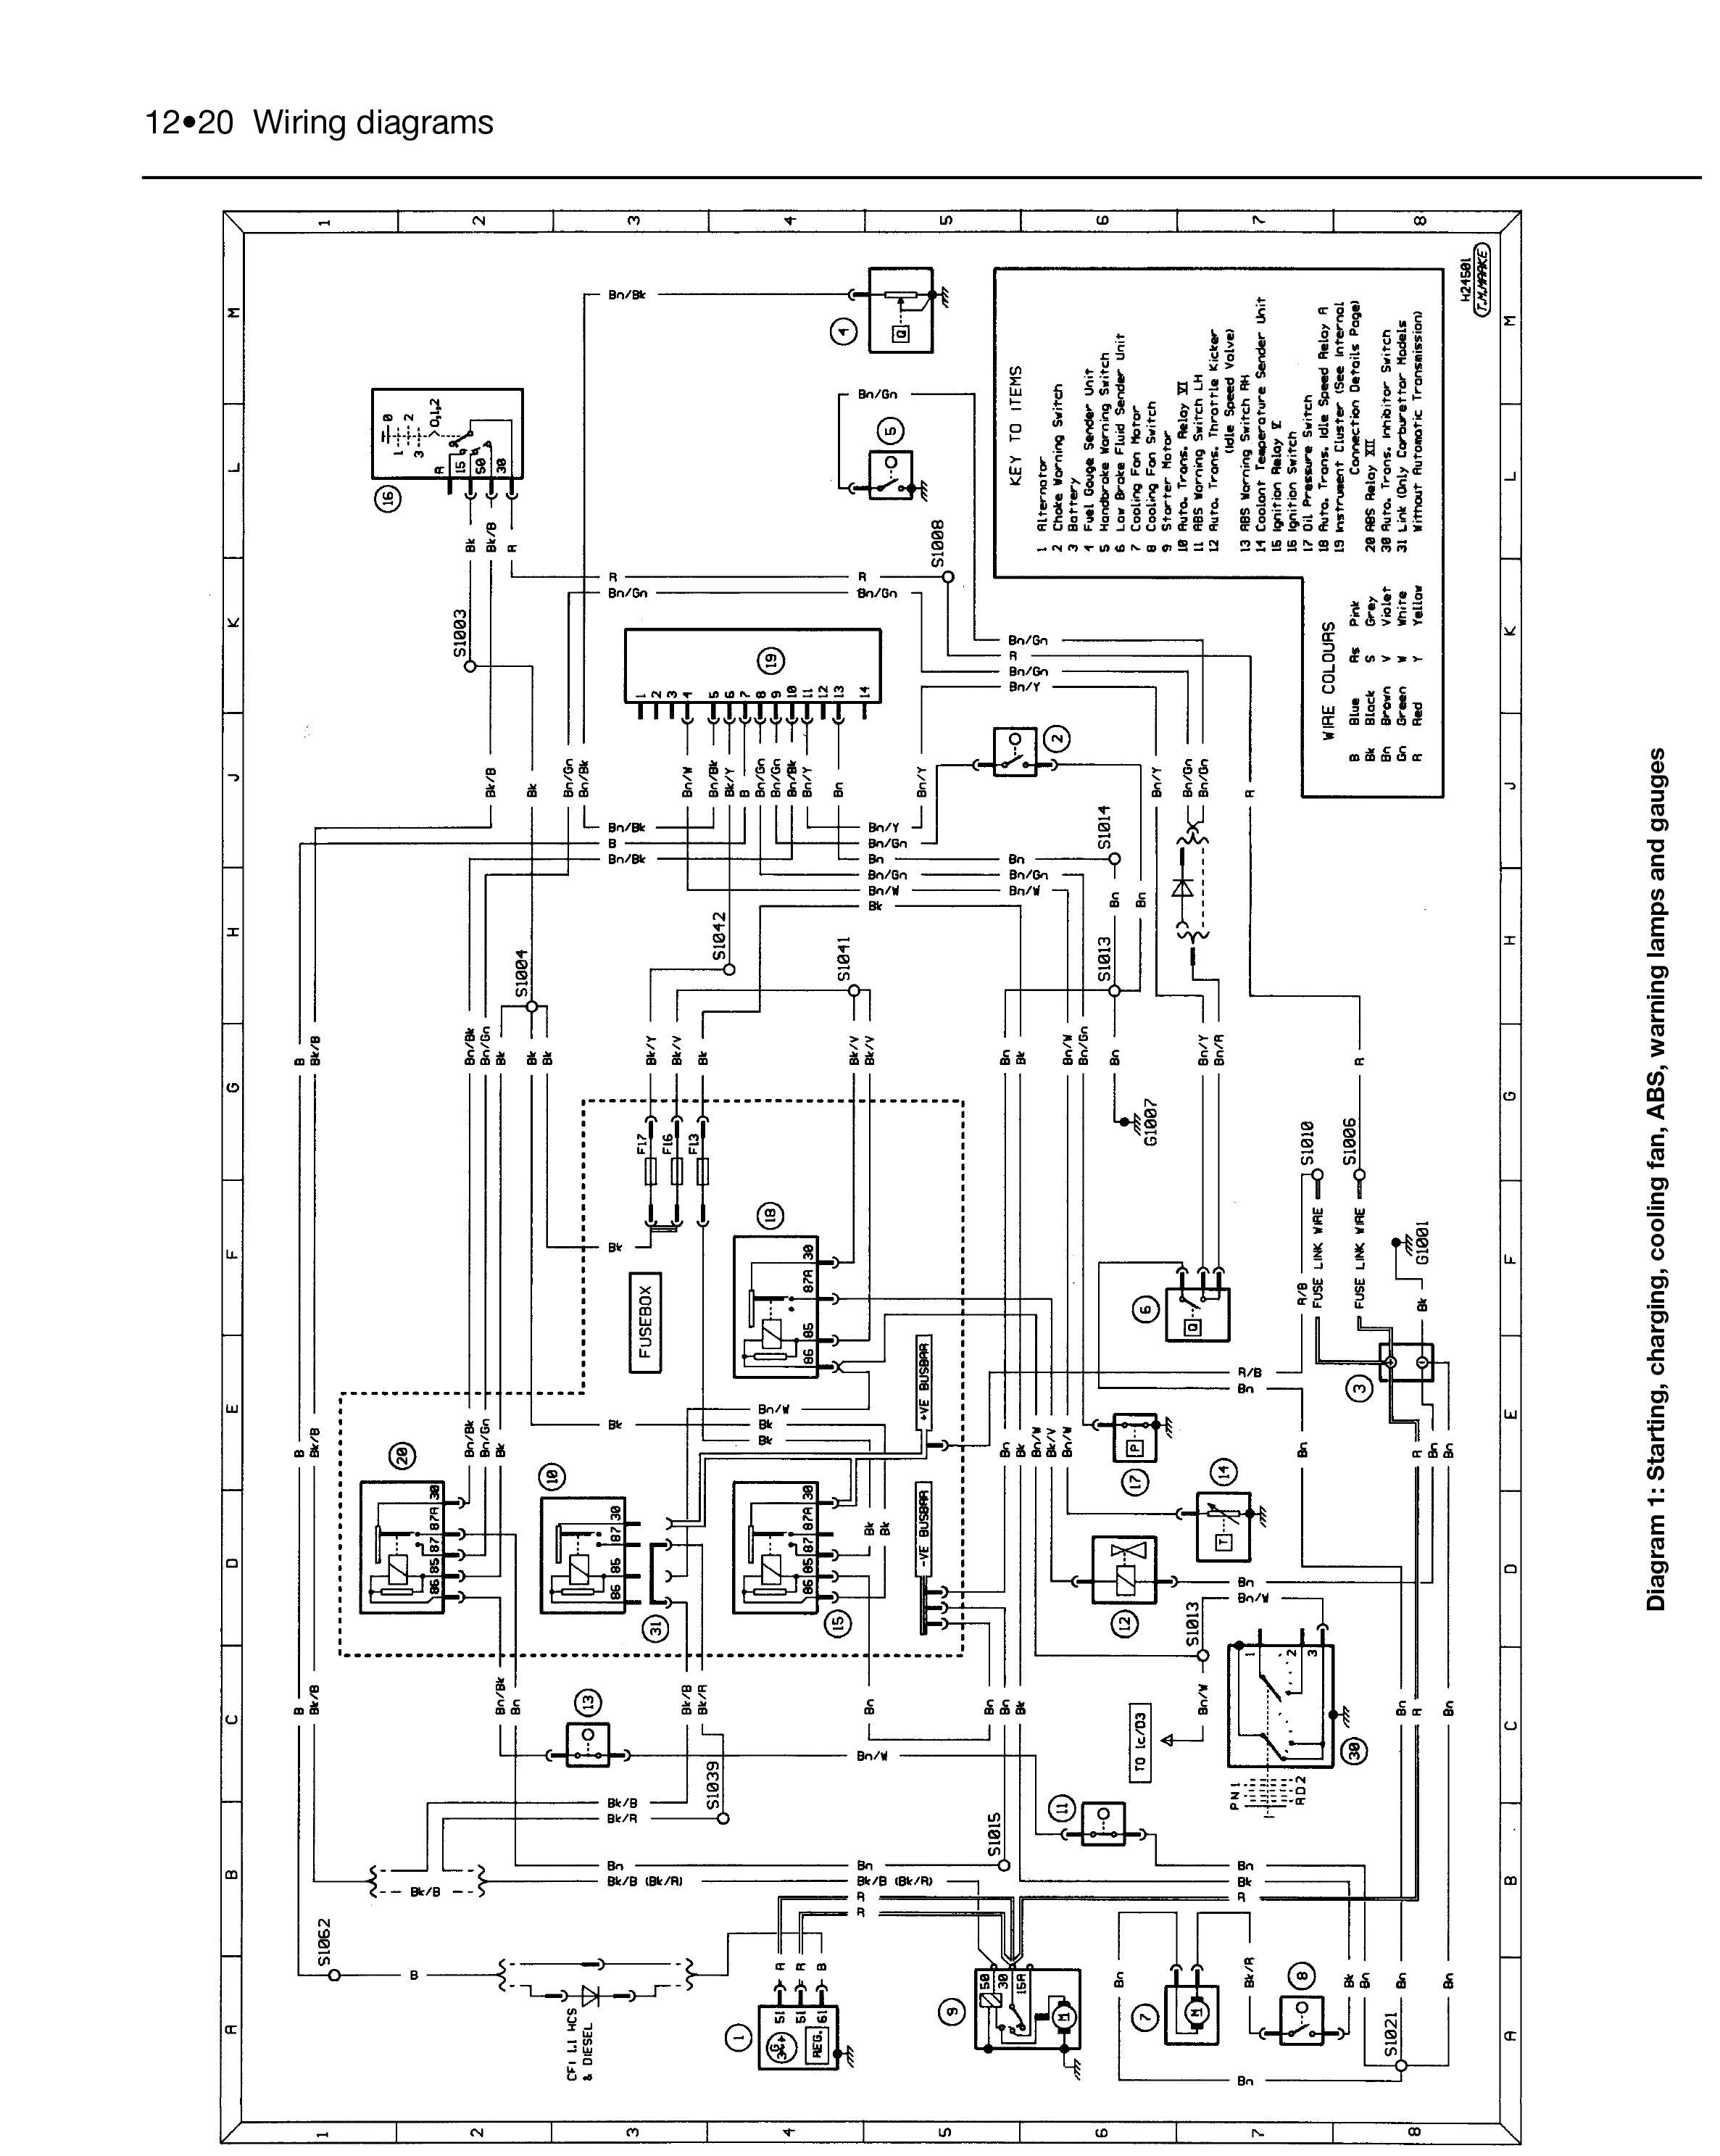 [DIAGRAM_38ZD]  VD_6483] Ford Fiesta Mk5 Wiring Diagram Wiring Diagram Download Diagram | Ford Mondeo Wiring Diagram Pdf |  | Ical Gram Botse Itis Viewor Mohammedshrine Librar Wiring 101